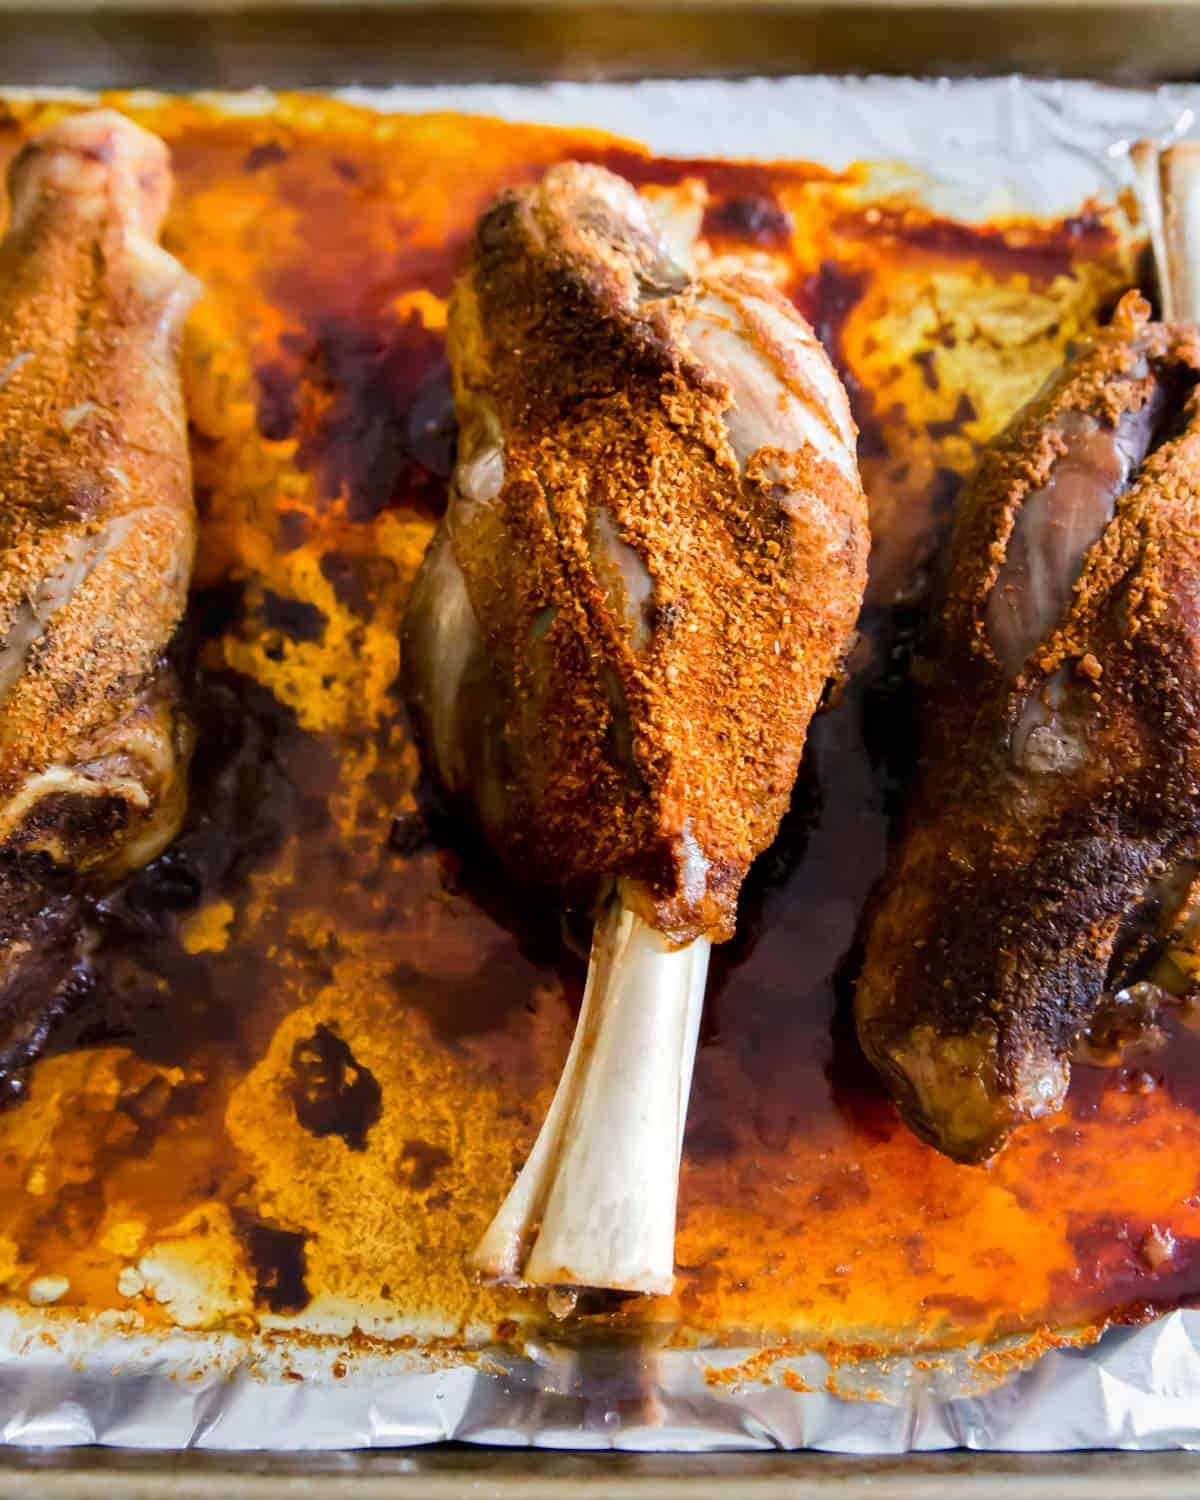 After baking, these BBQ lamb shanks are slathered in BBQ sauce and then finished on the grill.